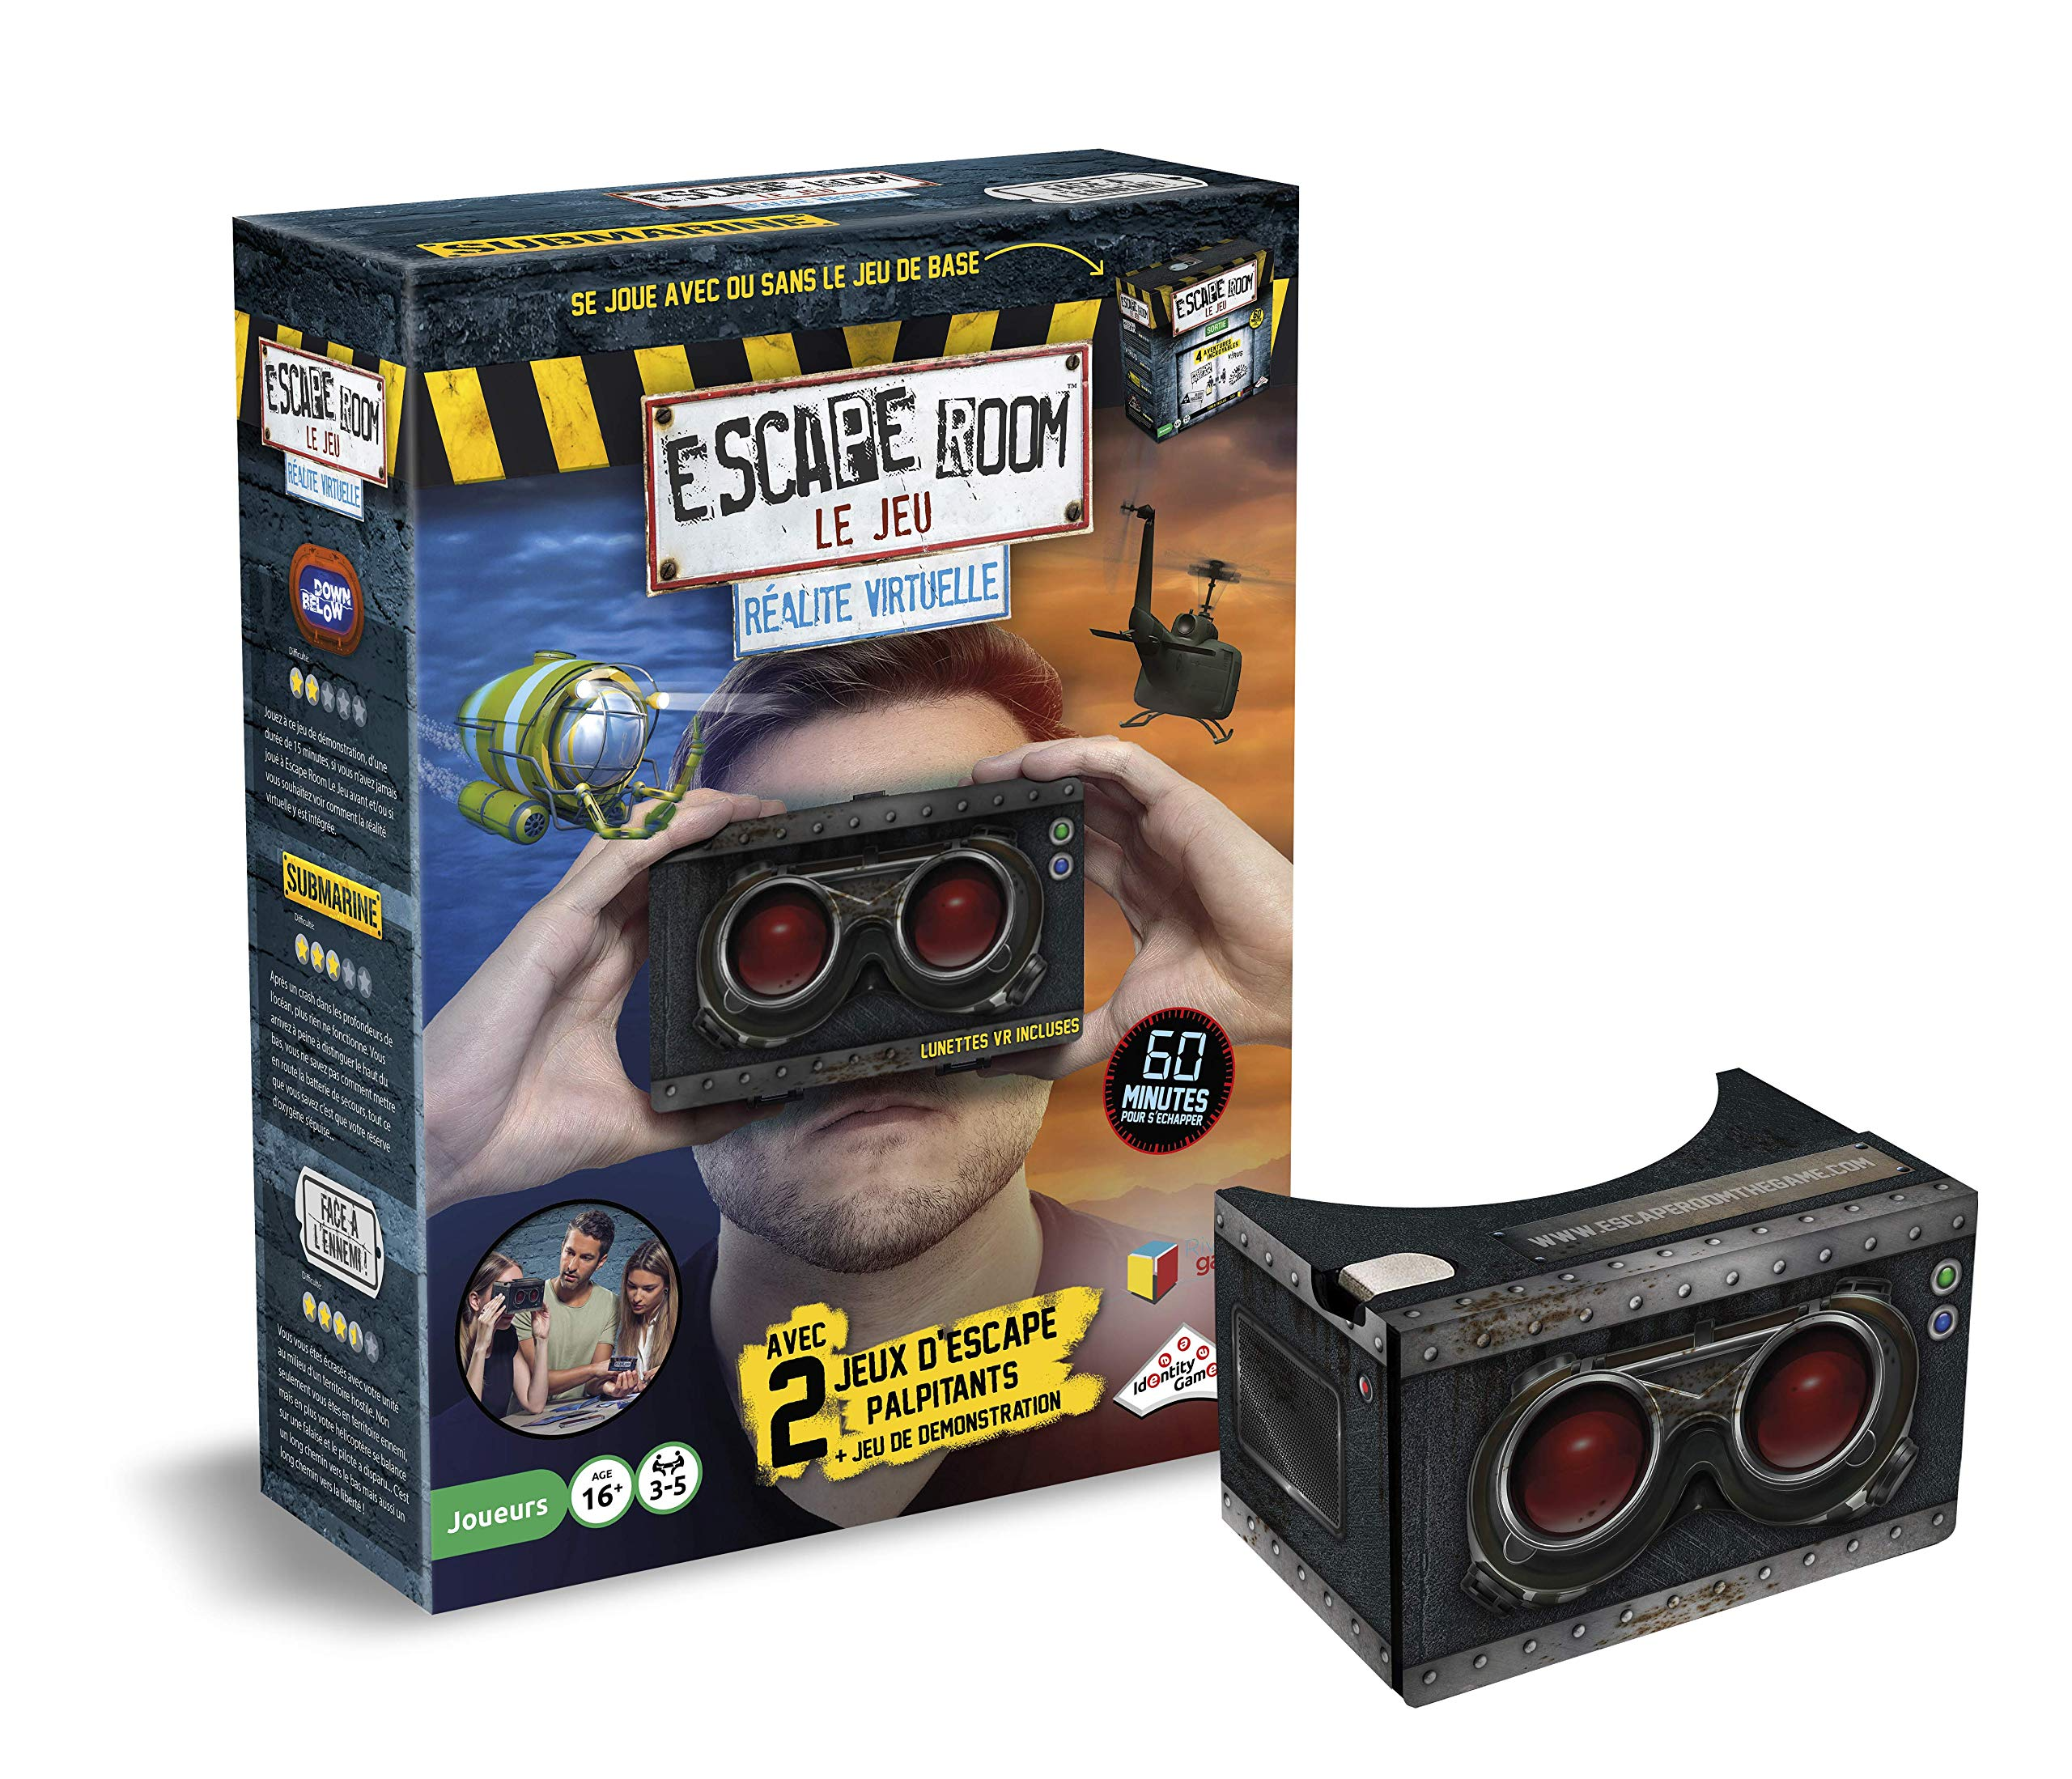 Identity Games Escape Games 5080 Set of 2 Virtual Realite Games French Version